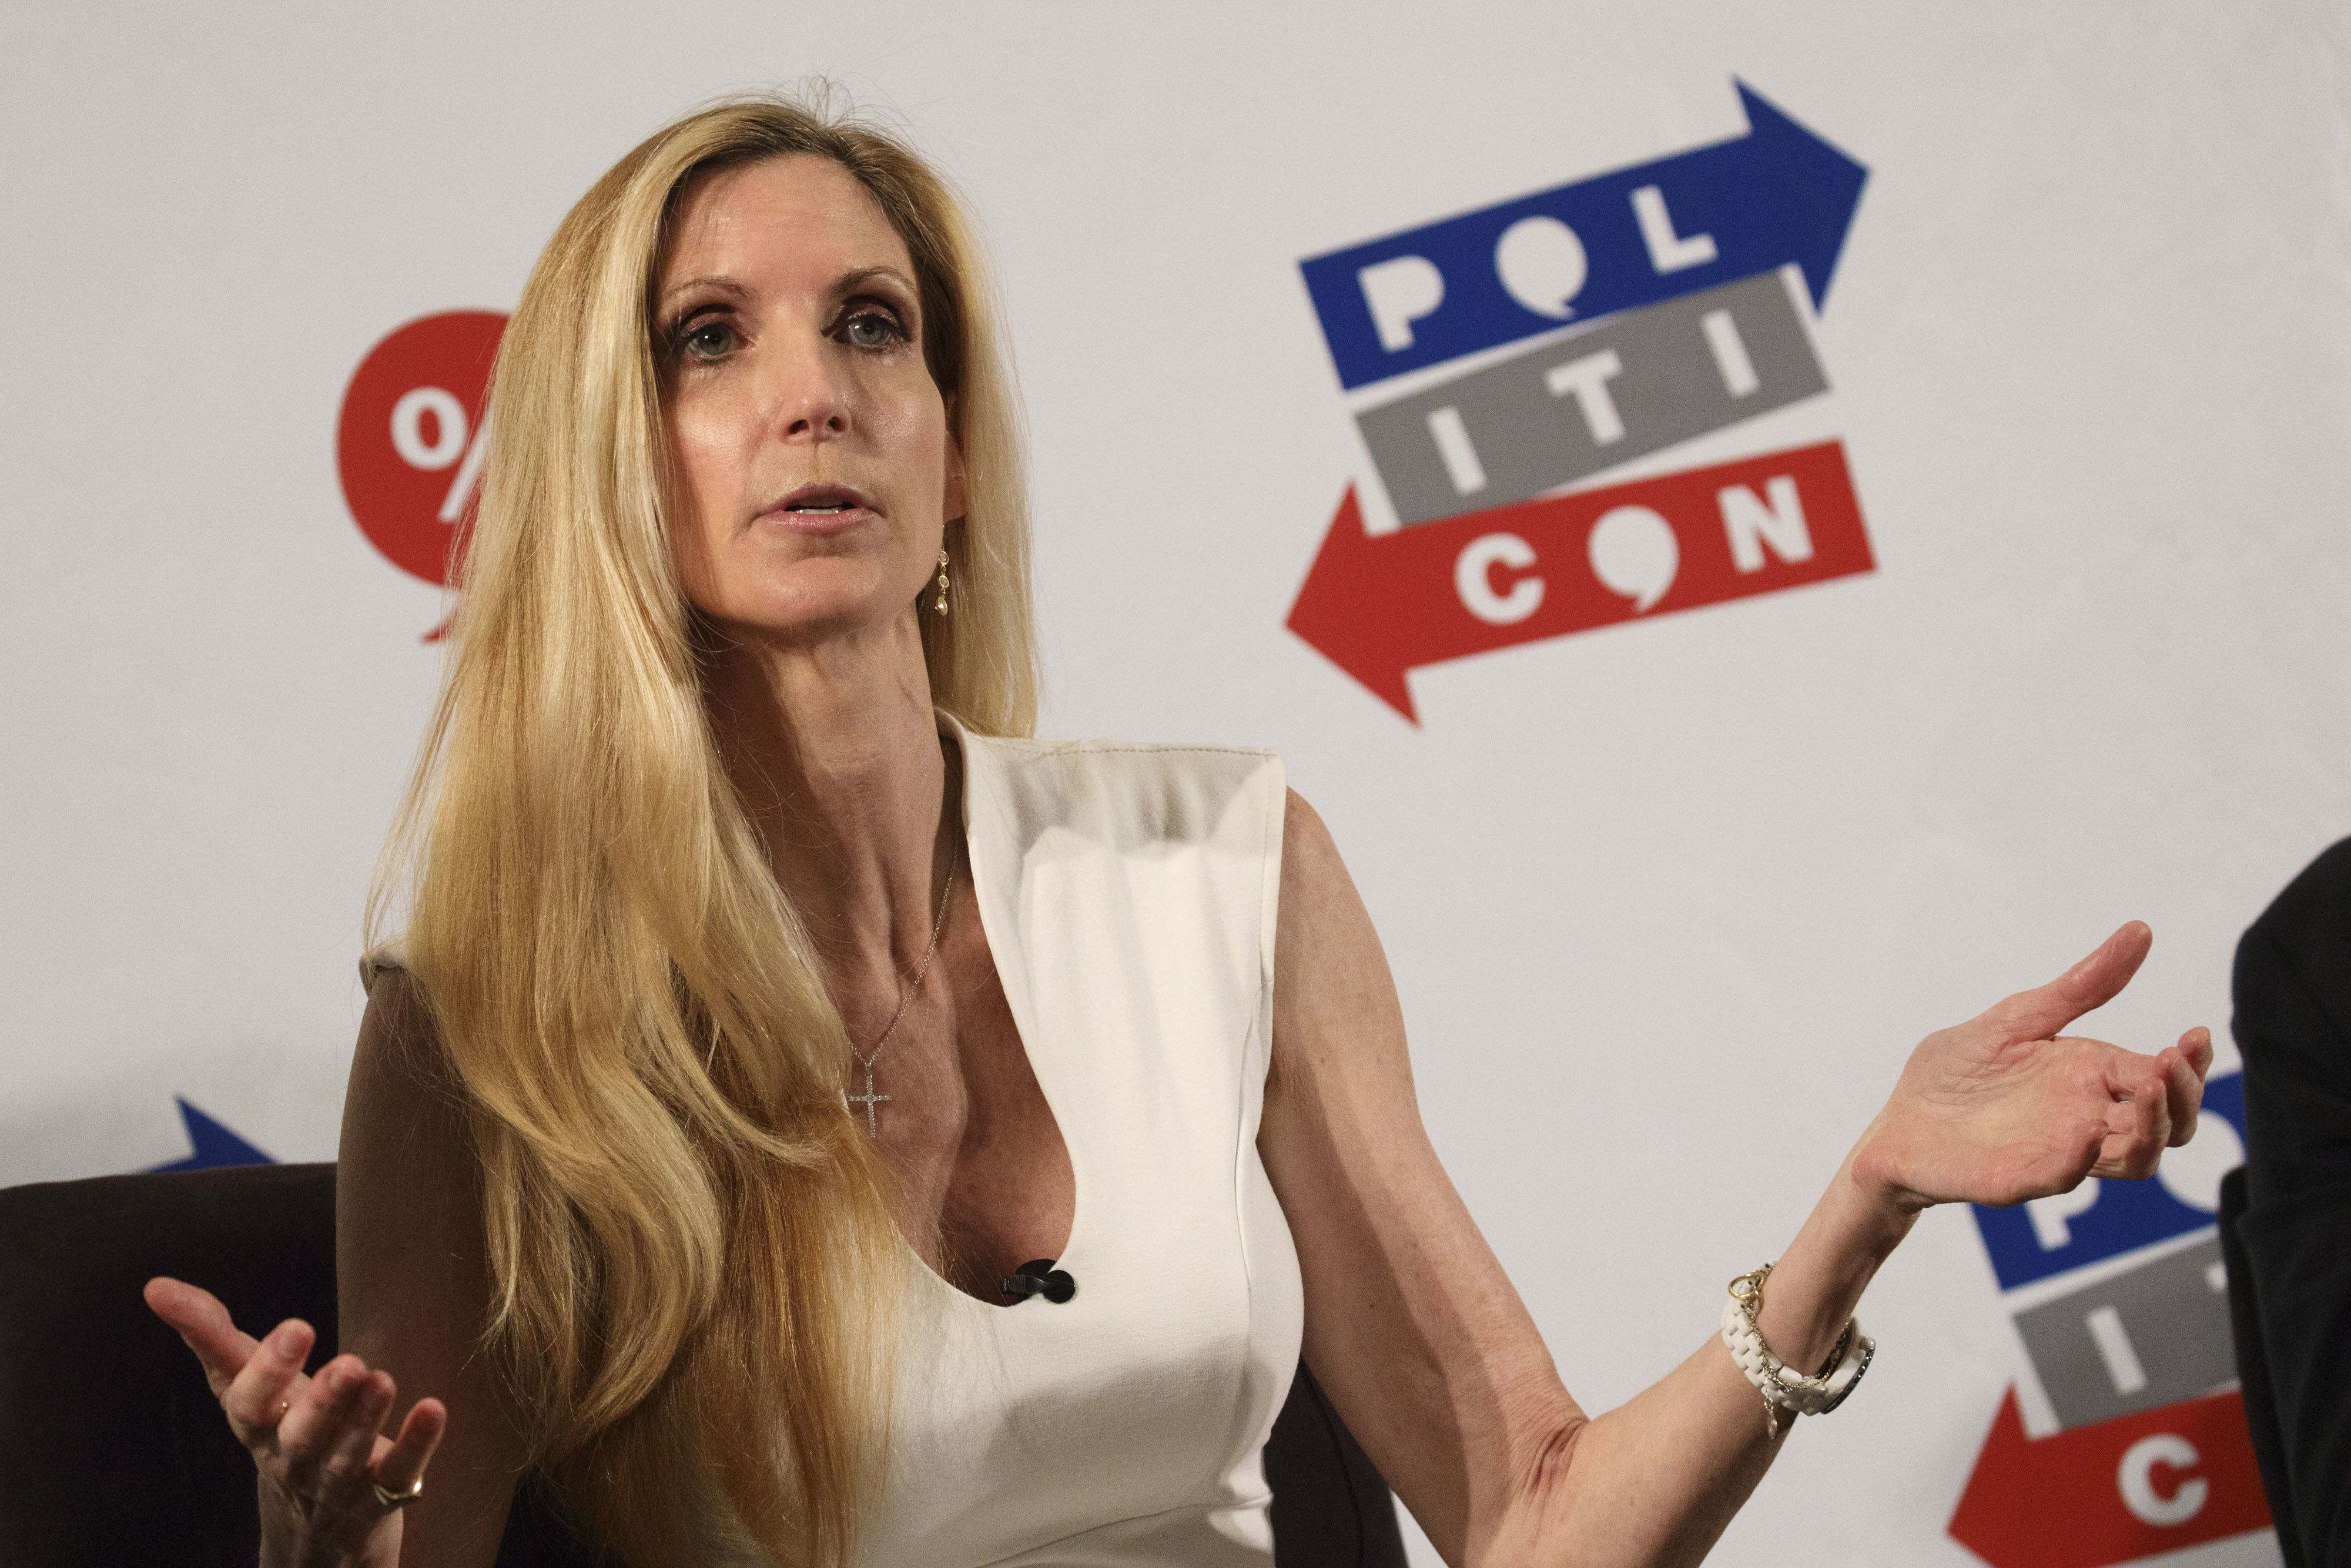 Author Ann Coulter speaks during a panel discussion at the Politicon convention inside the Pasadena Convention Center in Pasadena, California, U.S., on Saturday, July 29, 2017. During the third annual Politicon pundits, politicians, comedians and entertainers gather to discuss issues that touch all sides of the political spectrum. Photographer: Patrick T. Fallon/Bloomberg via Getty Images